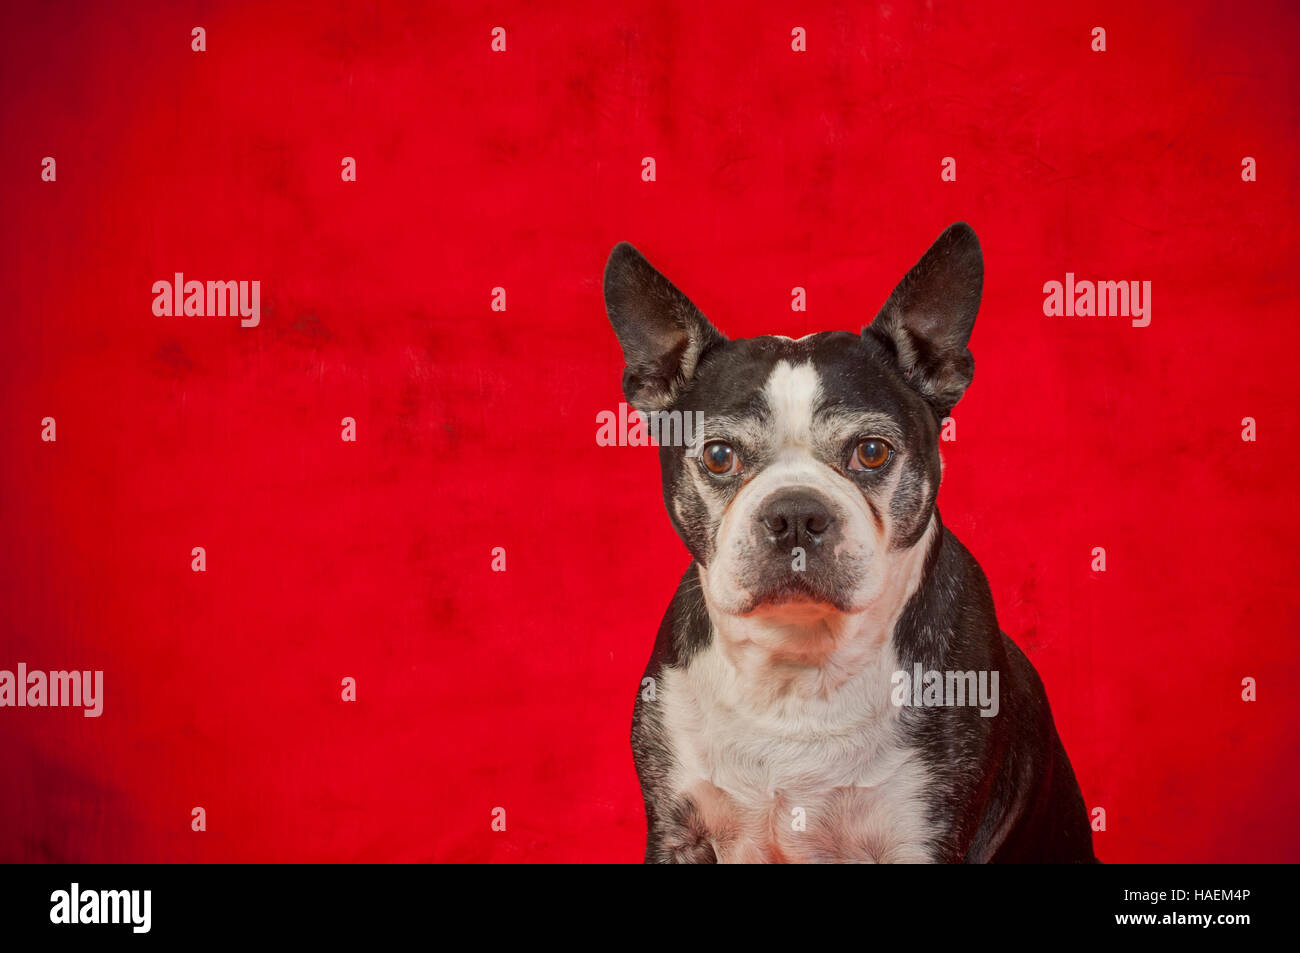 Boston terrier dog in front of a red backdrop - Stock Image